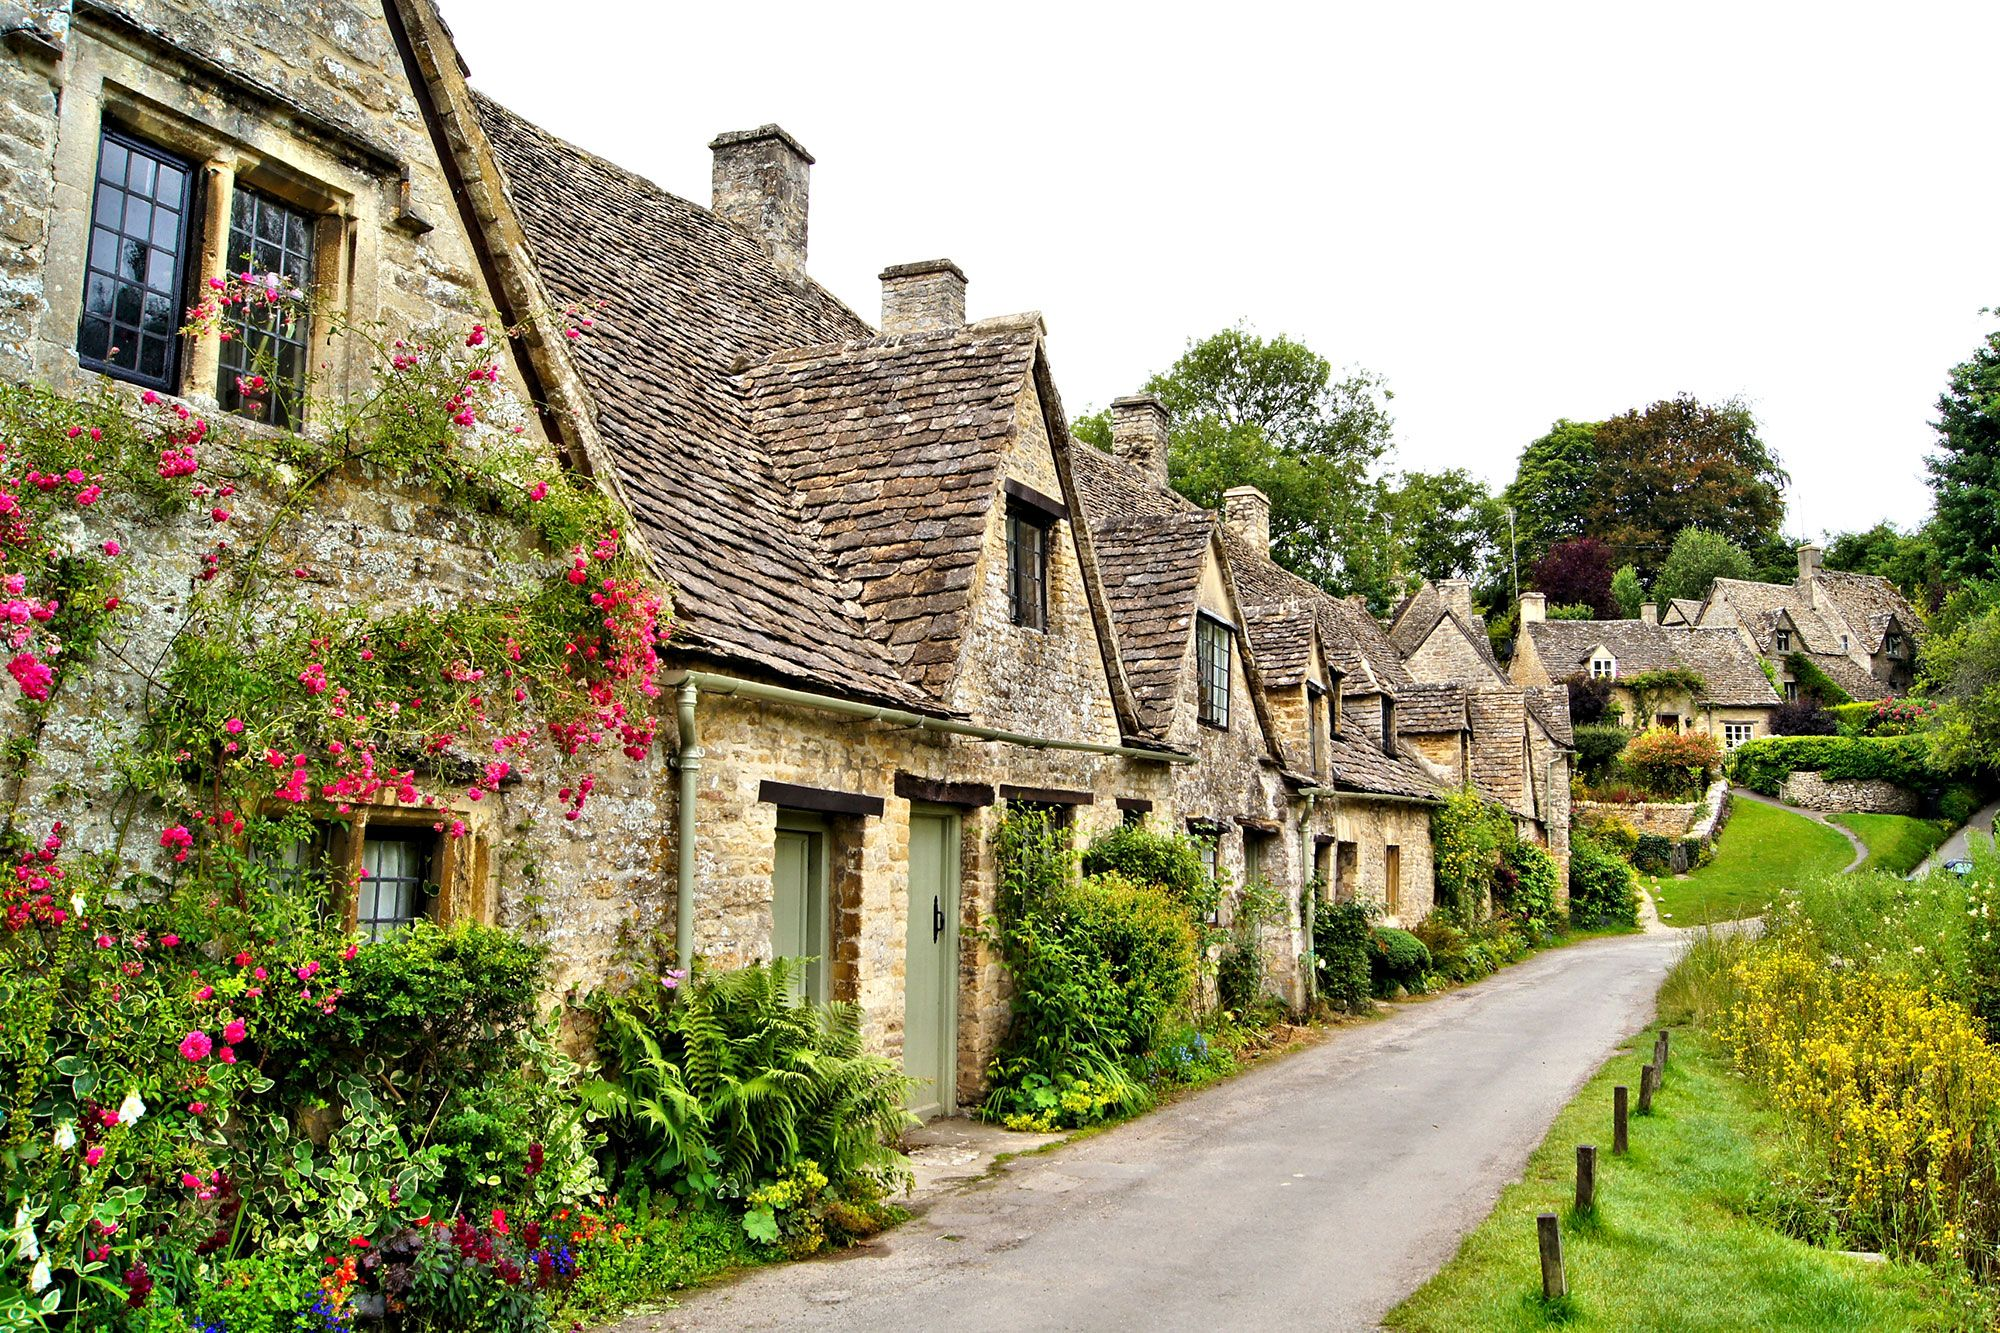 7 of the most Instagrammable spots in the Cotswolds